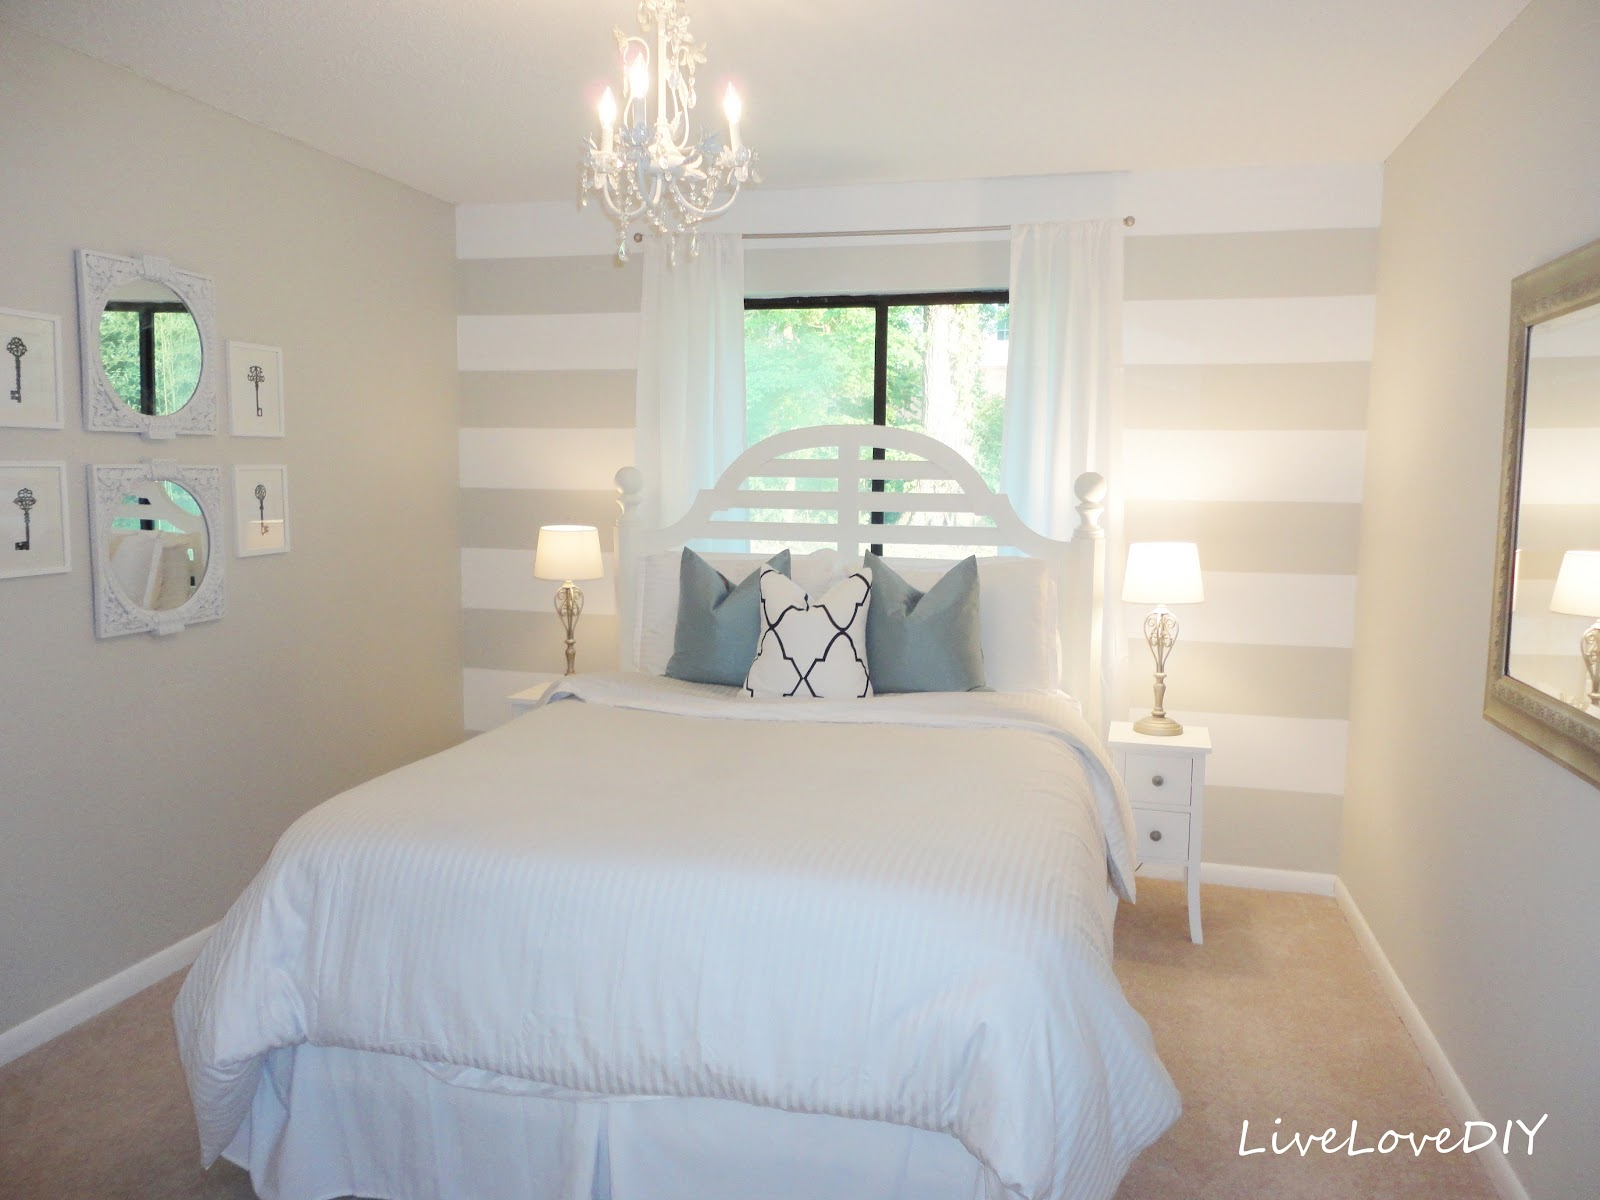 Bedroom Accent Wall Color - interior decorating accessories